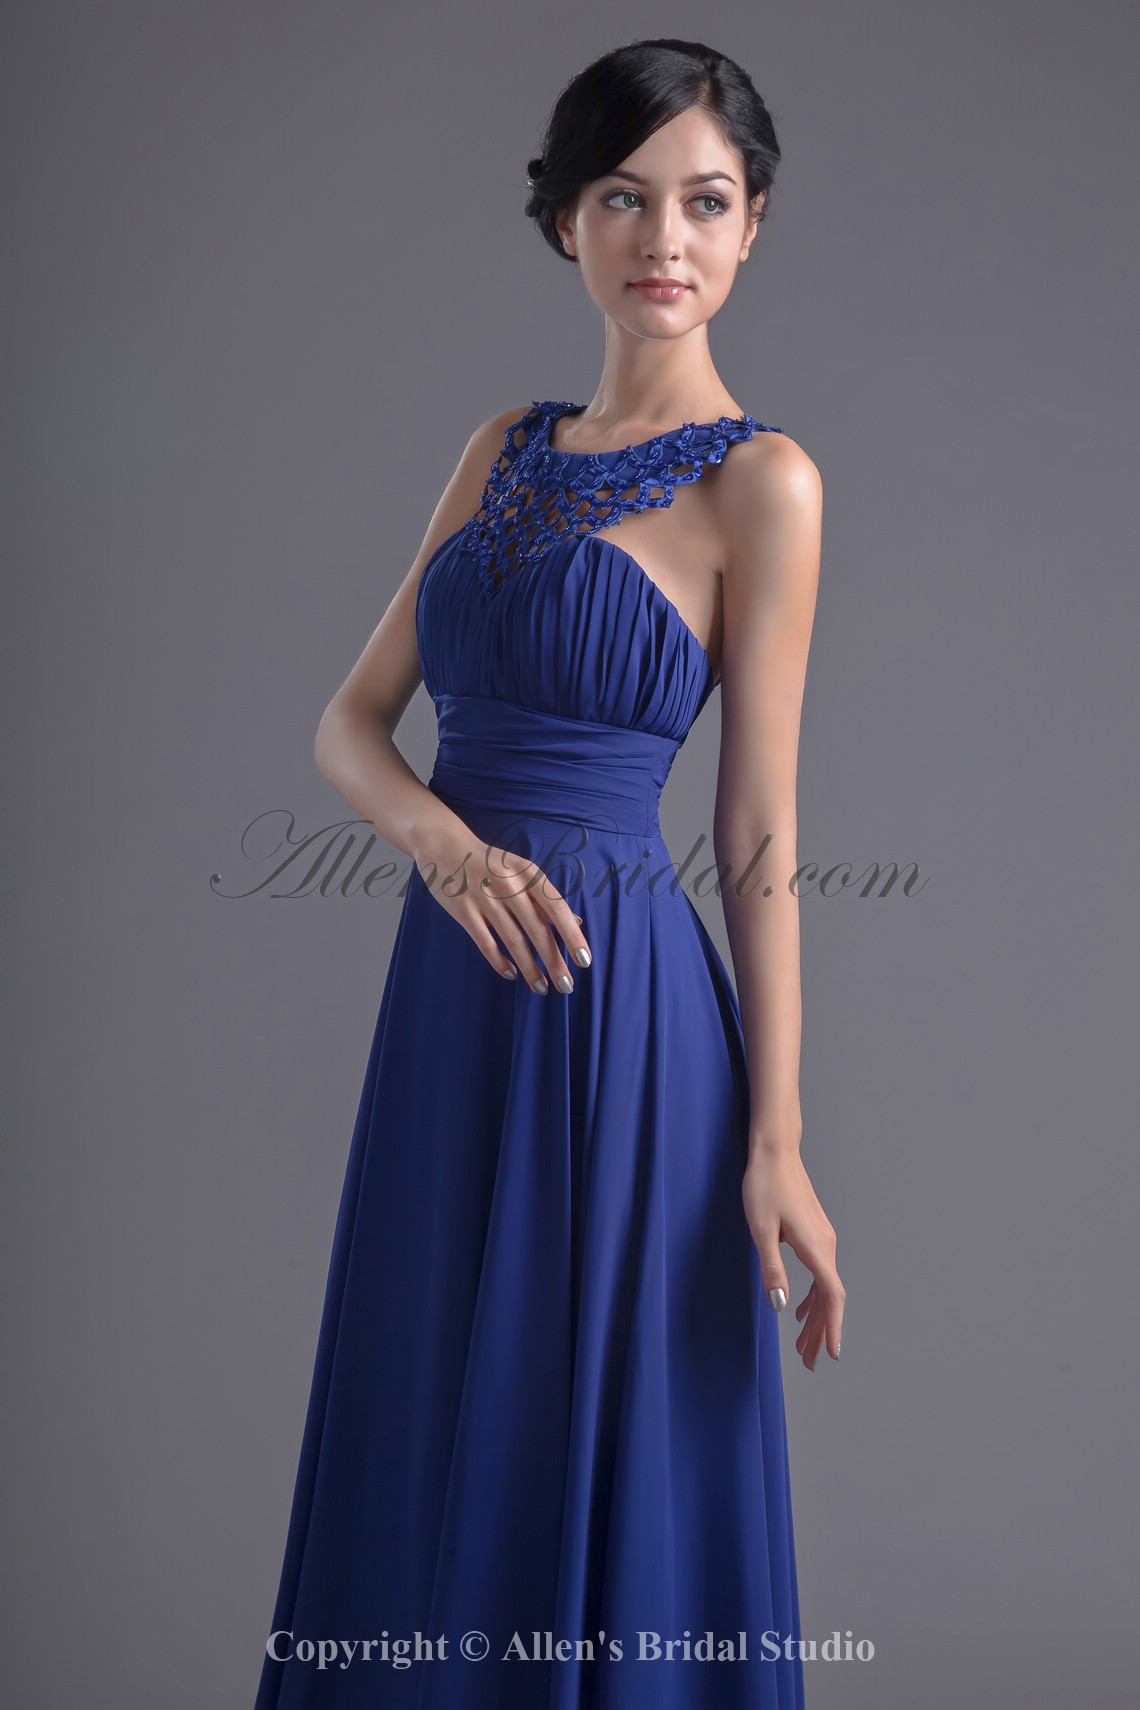 /21-165/chiffon-jewel-neckline-a-line-floor-length-beading-prom-dress.jpg